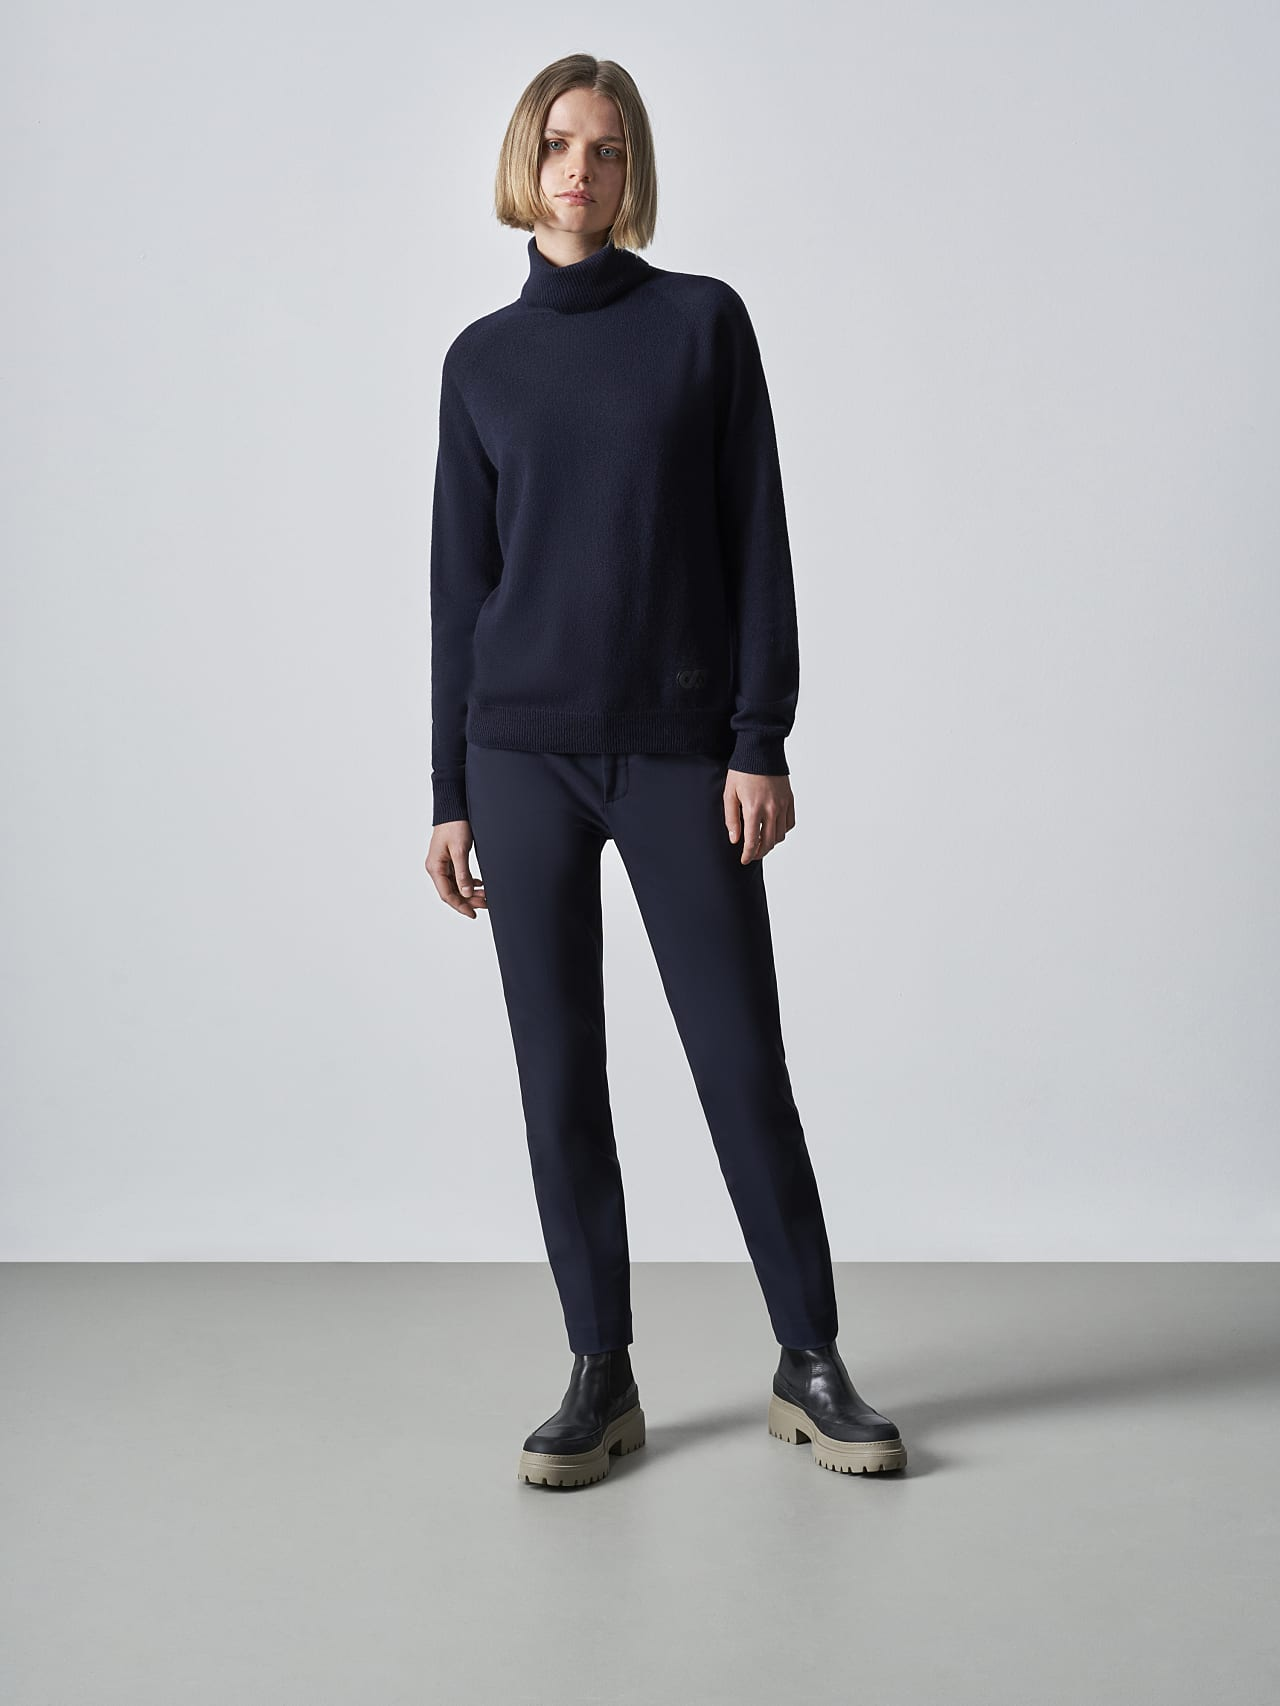 FLAMY V1.Y5.02 Seamless 3D Knit Merino-Cashmere Turtle Neck navy Front Alpha Tauri